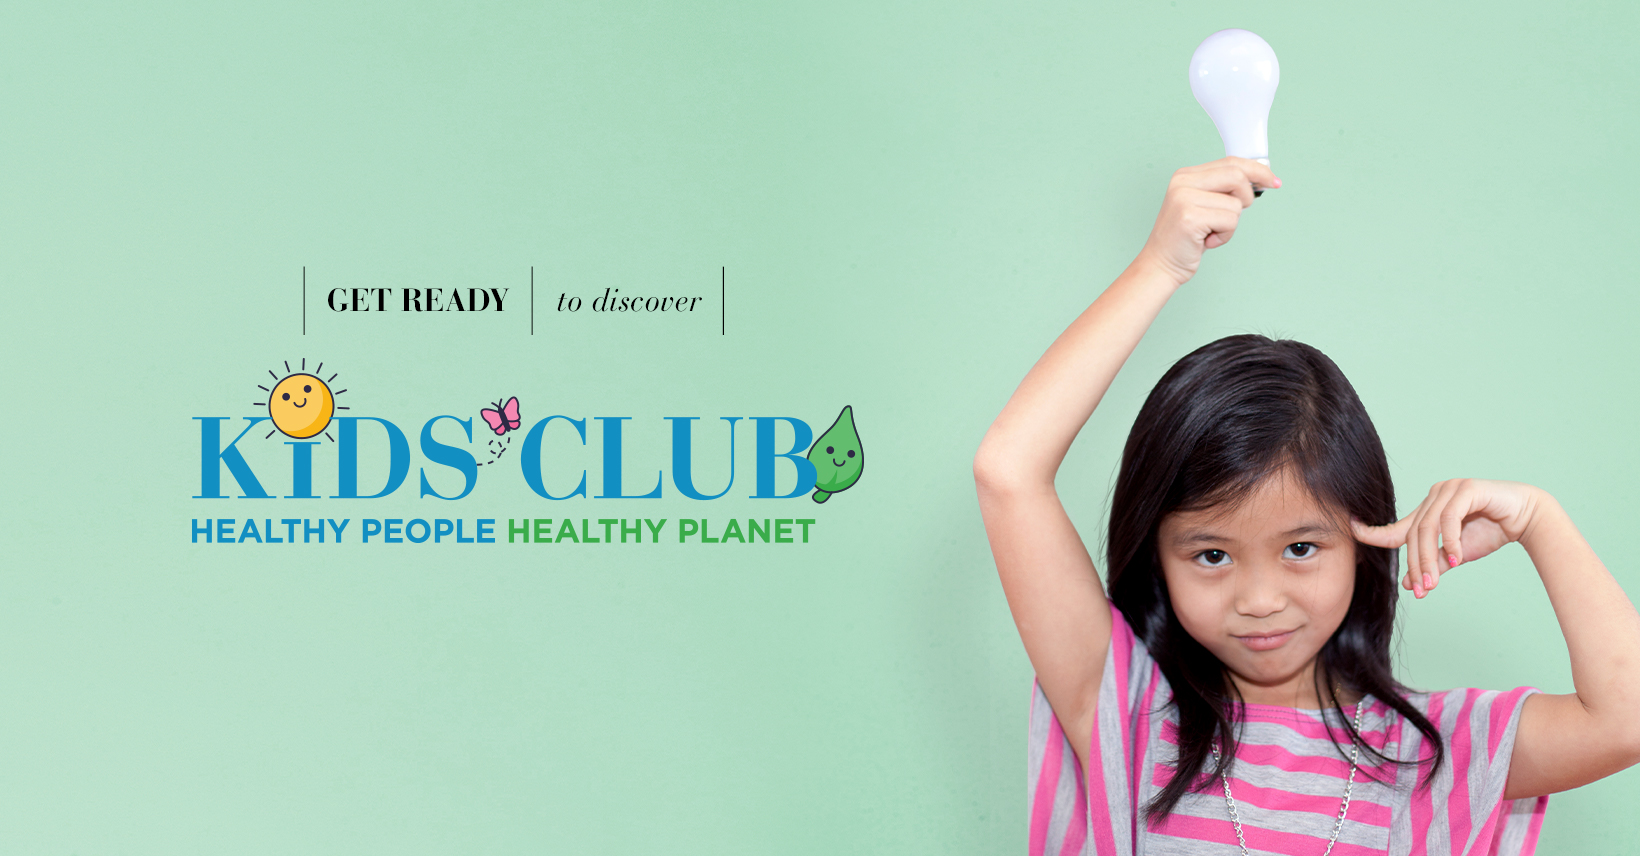 young girl holding a light bulb over her head. Copy reads: